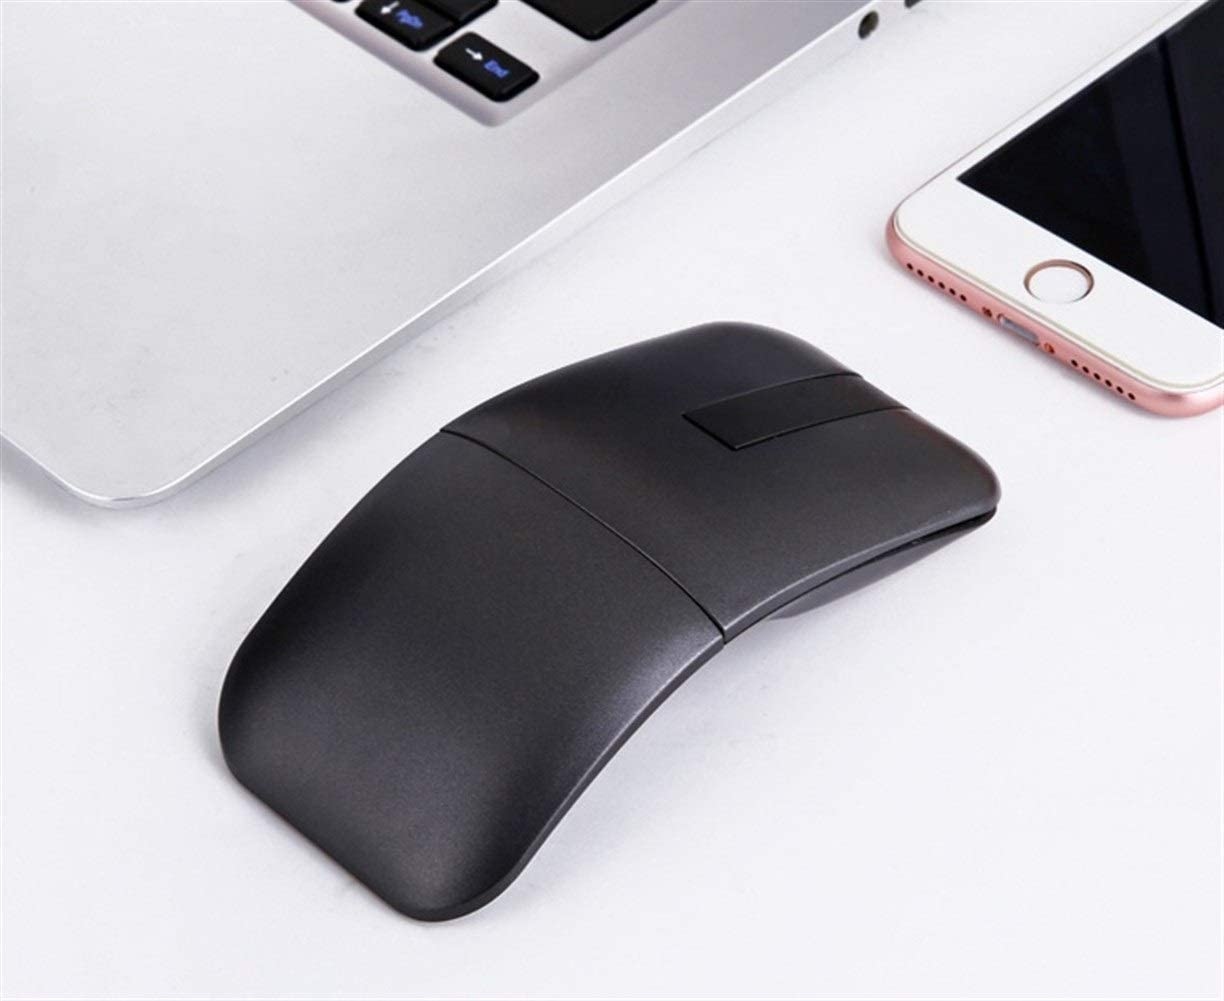 Soft Second Generation 2.4 Upgrade Arc Touch Ultra-Thin Touch Folding Suitable for Laptop Mouse GXF-Yueyin Wireless Optical Mouse